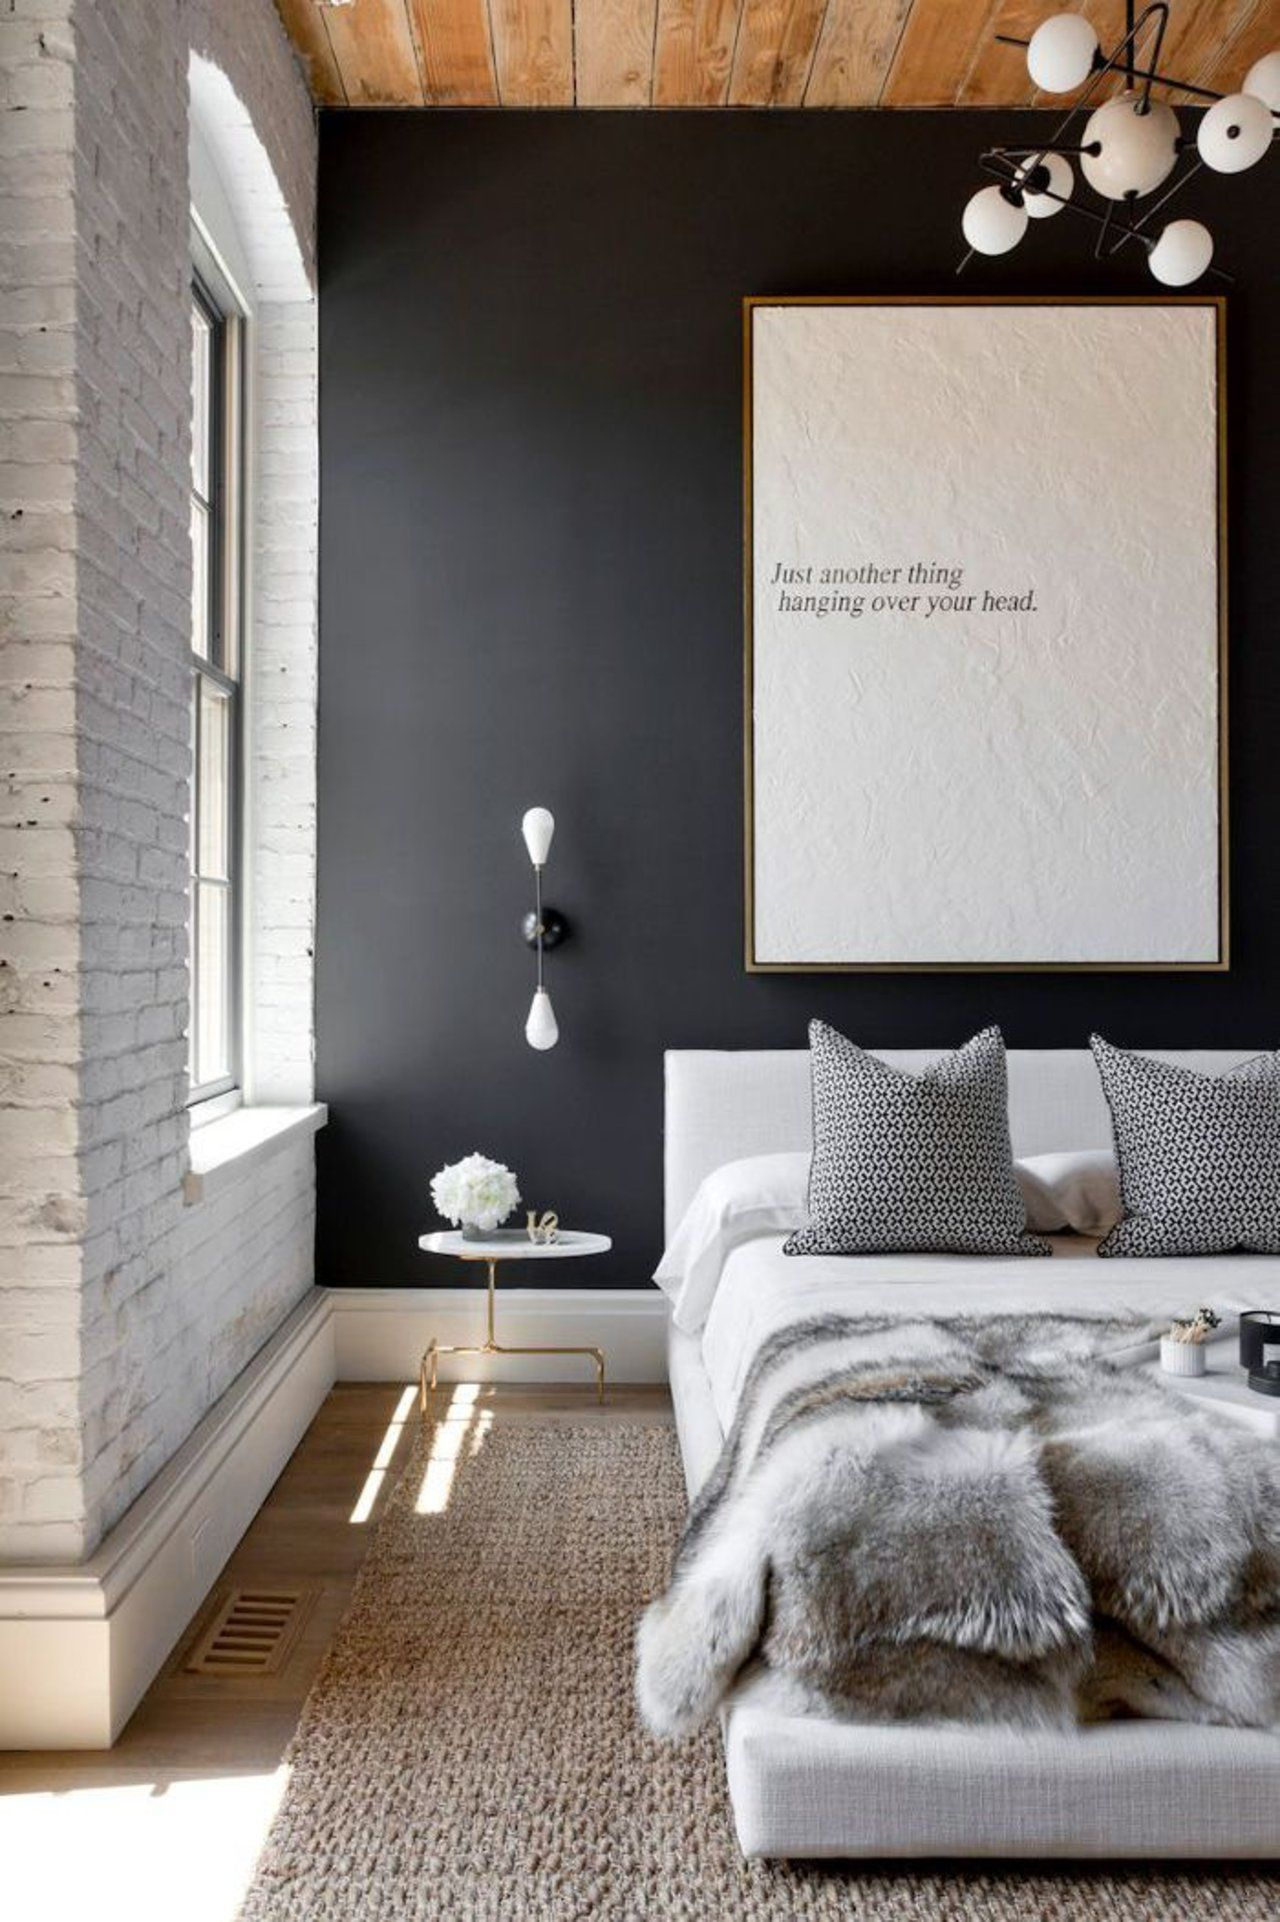 Bedroom And More how to make your bedroom feel more grown up | bedrooms, learning